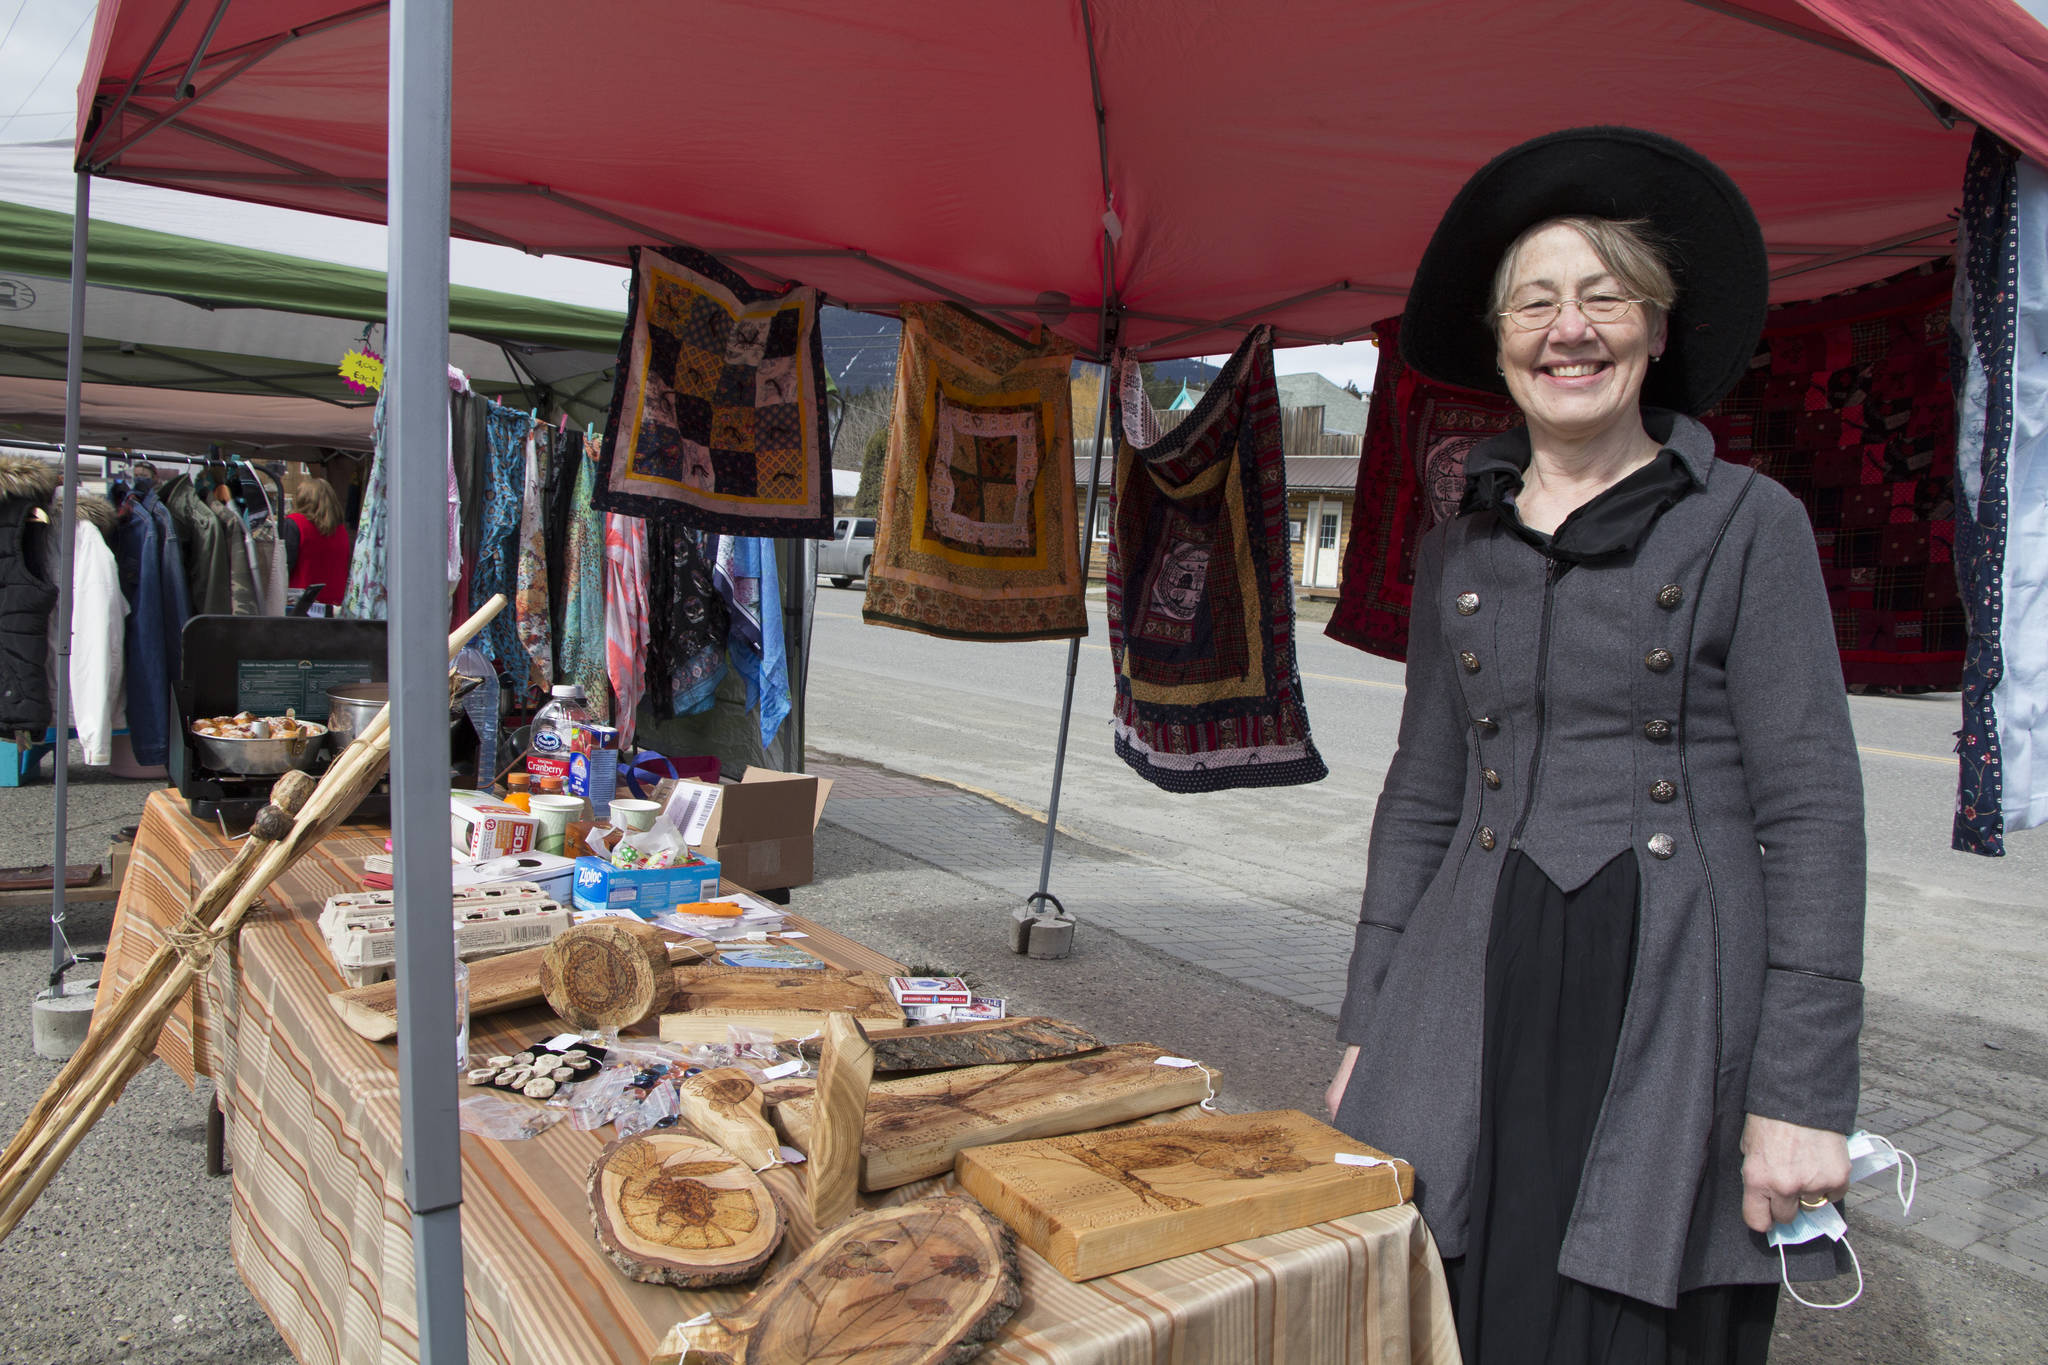 Bernice Weihs-Anderson creates art with reclaimed wood and flogs it at the Clinton Outdoor Market. (Kelly Sinoski photo - 100 Mile Free Press).